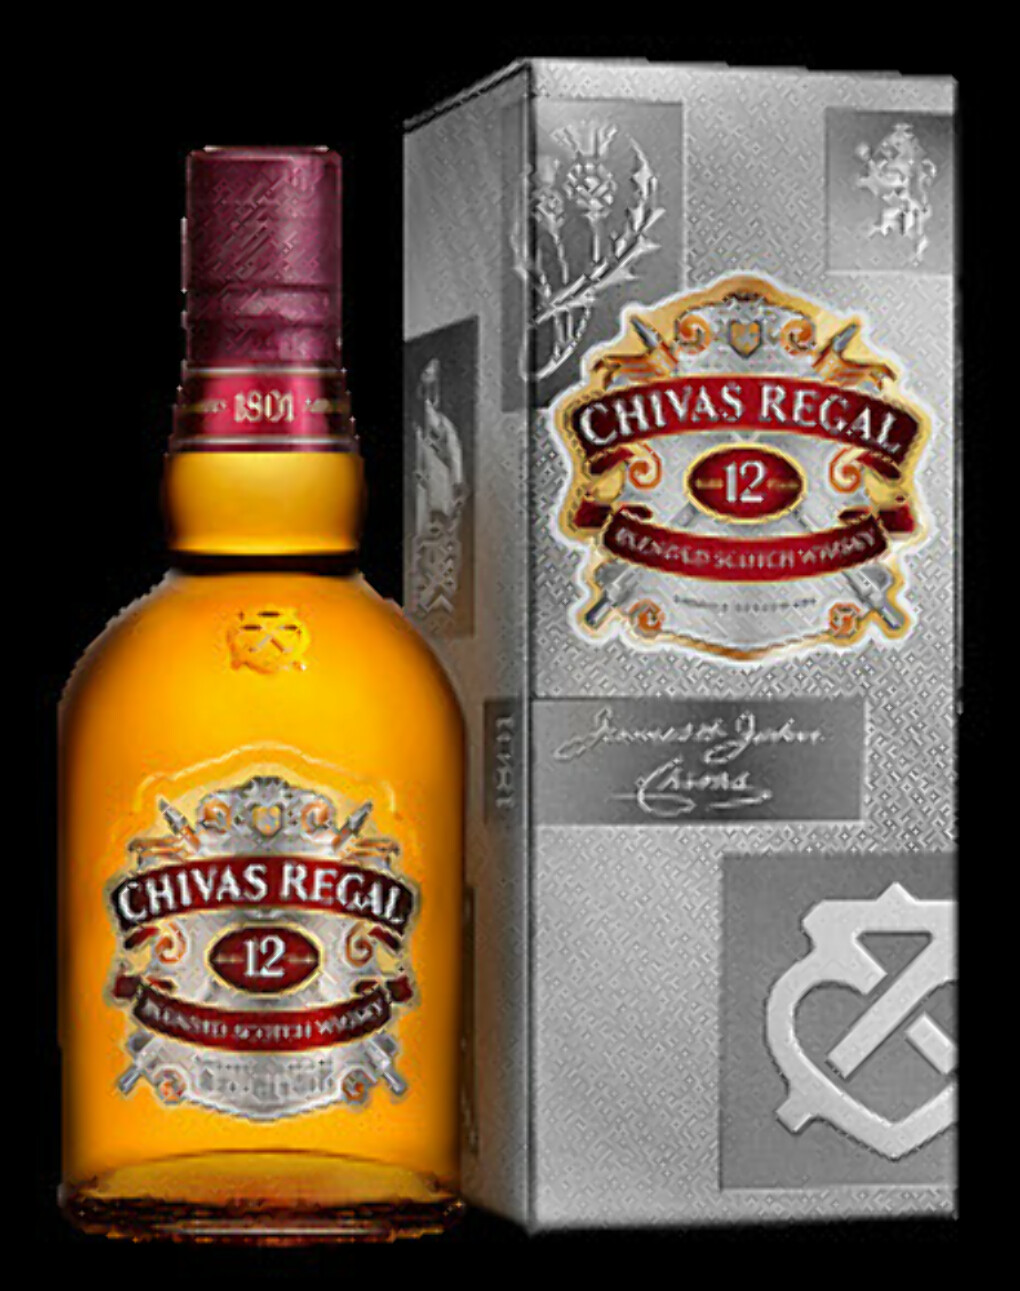 Виски Chivas Regal 12 years old, 0.7 л.